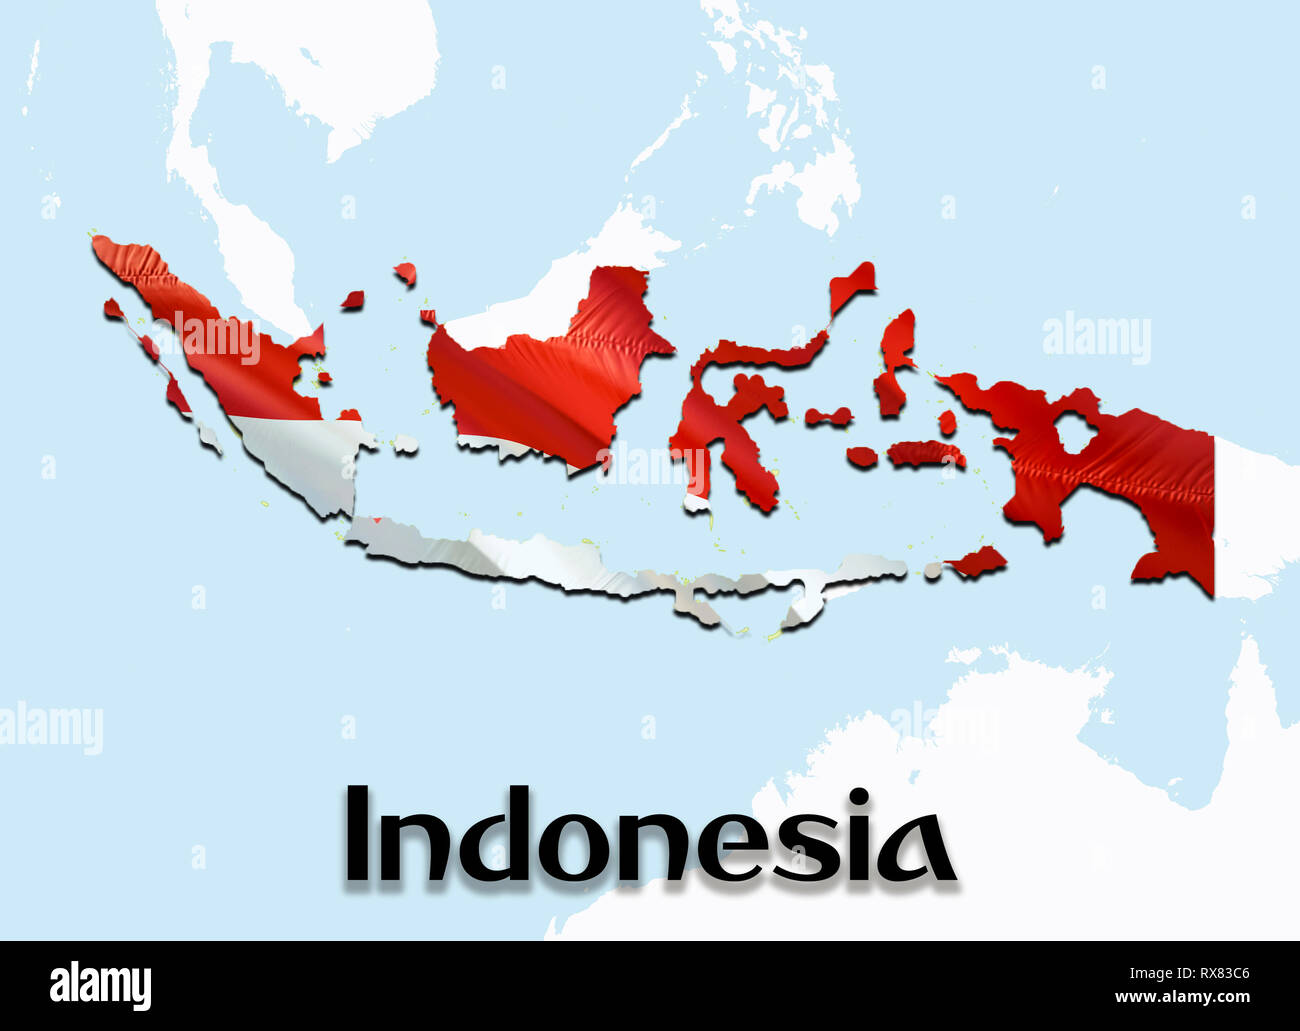 indonesia map high resolution stock photography and images alamy https www alamy com flag map of indonesia 3d rendering indonesia map and flag on asia map the national symbol of indonesia jakarta flag map background image download h image239894150 html